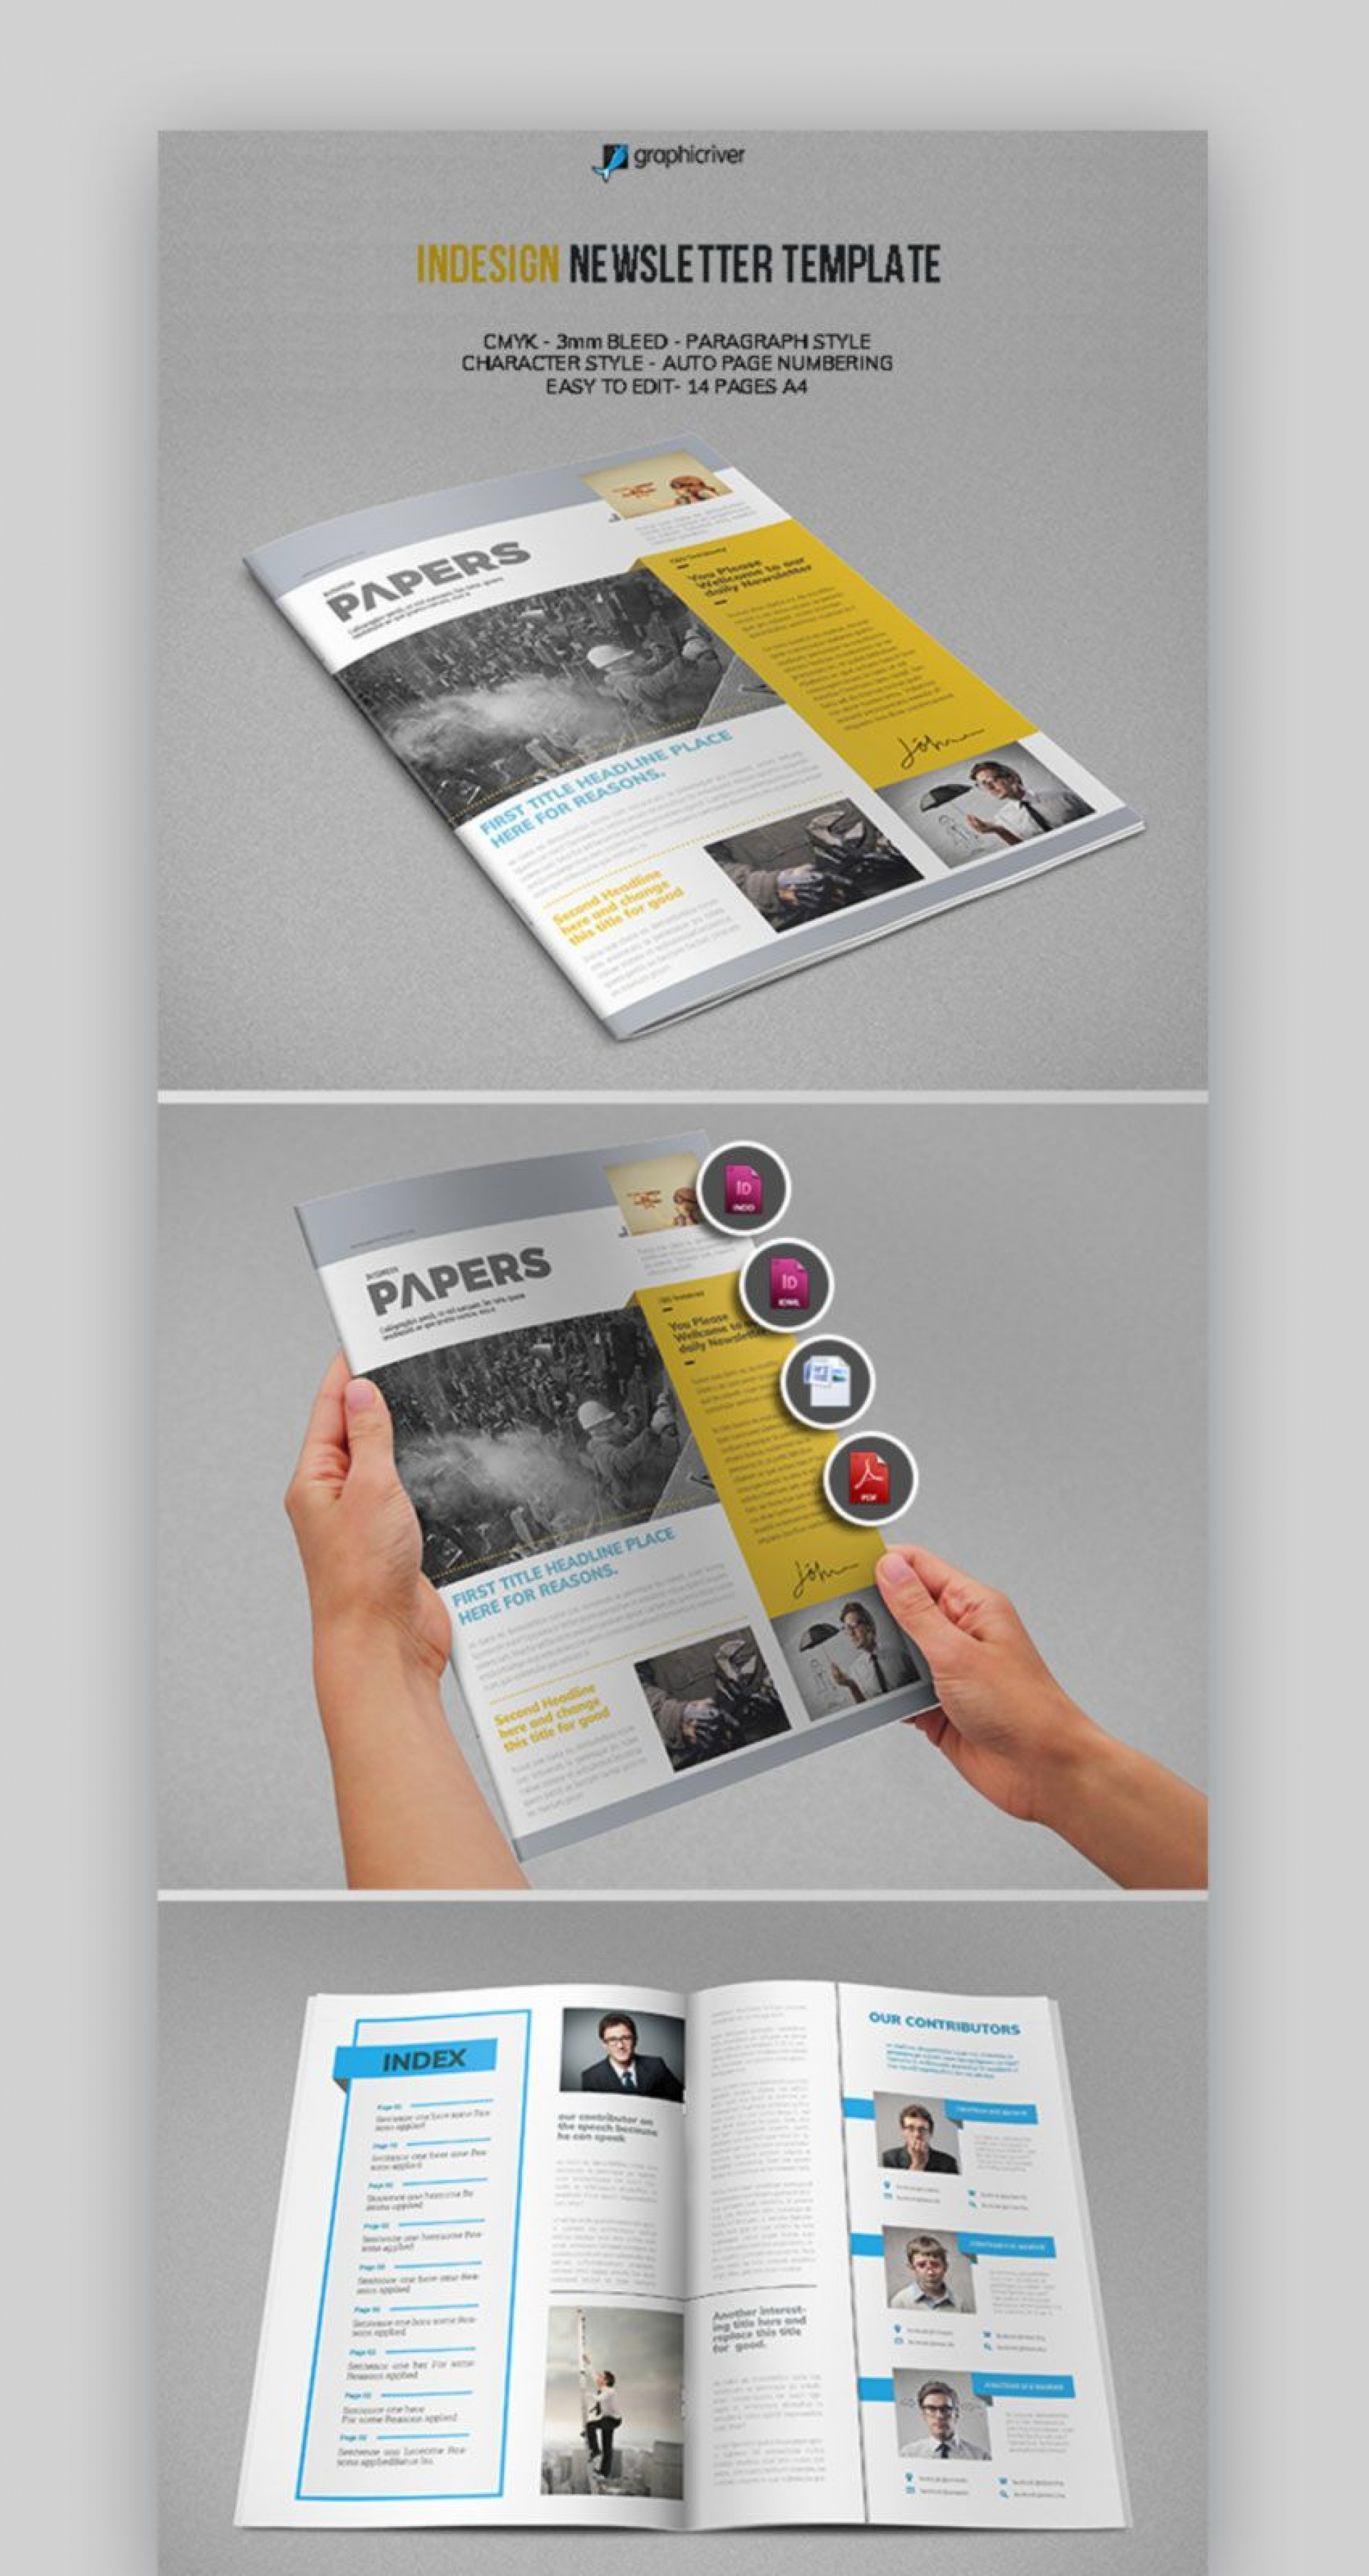 004 Phenomenal Publisher Newsletter Template Free Image  Microsoft Office Download1920